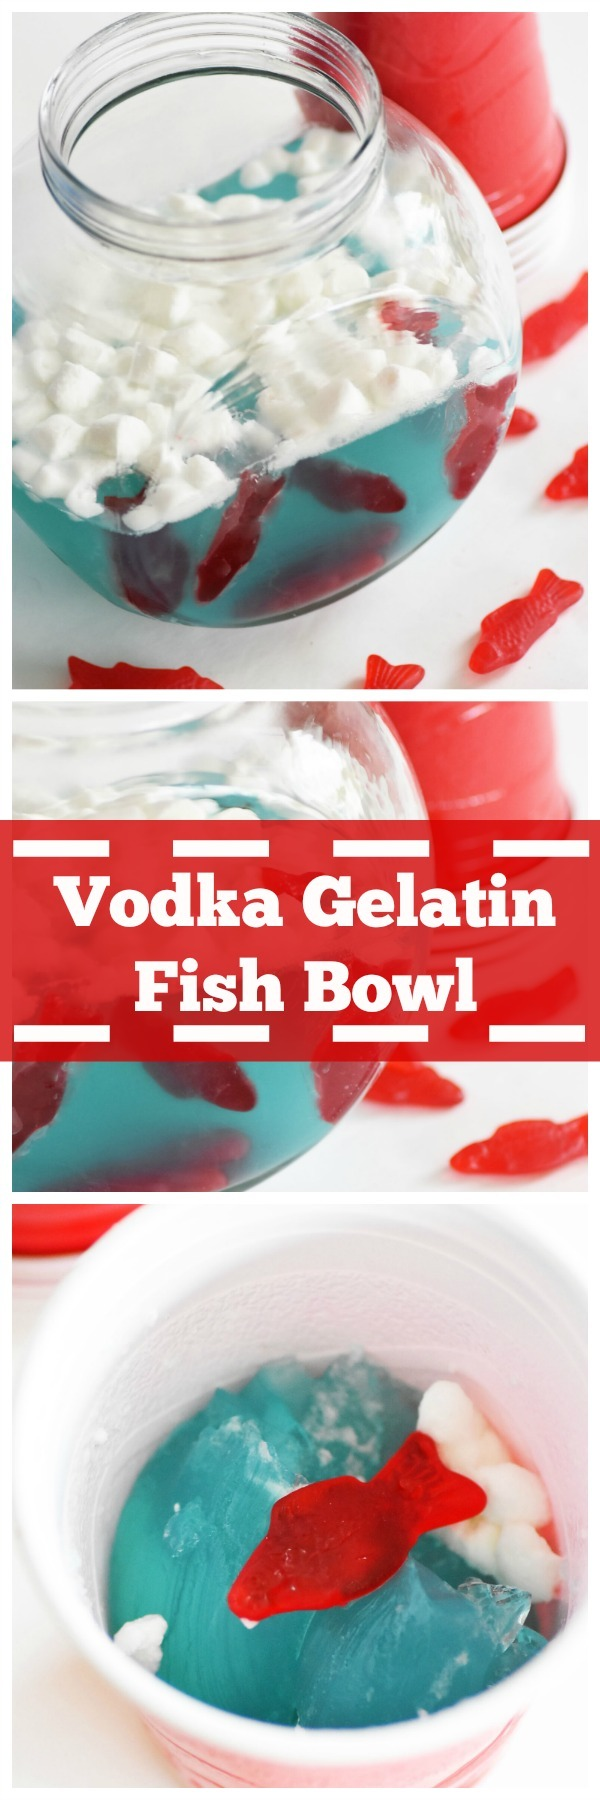 Vodka-Gelatin-Fish-Bowl1